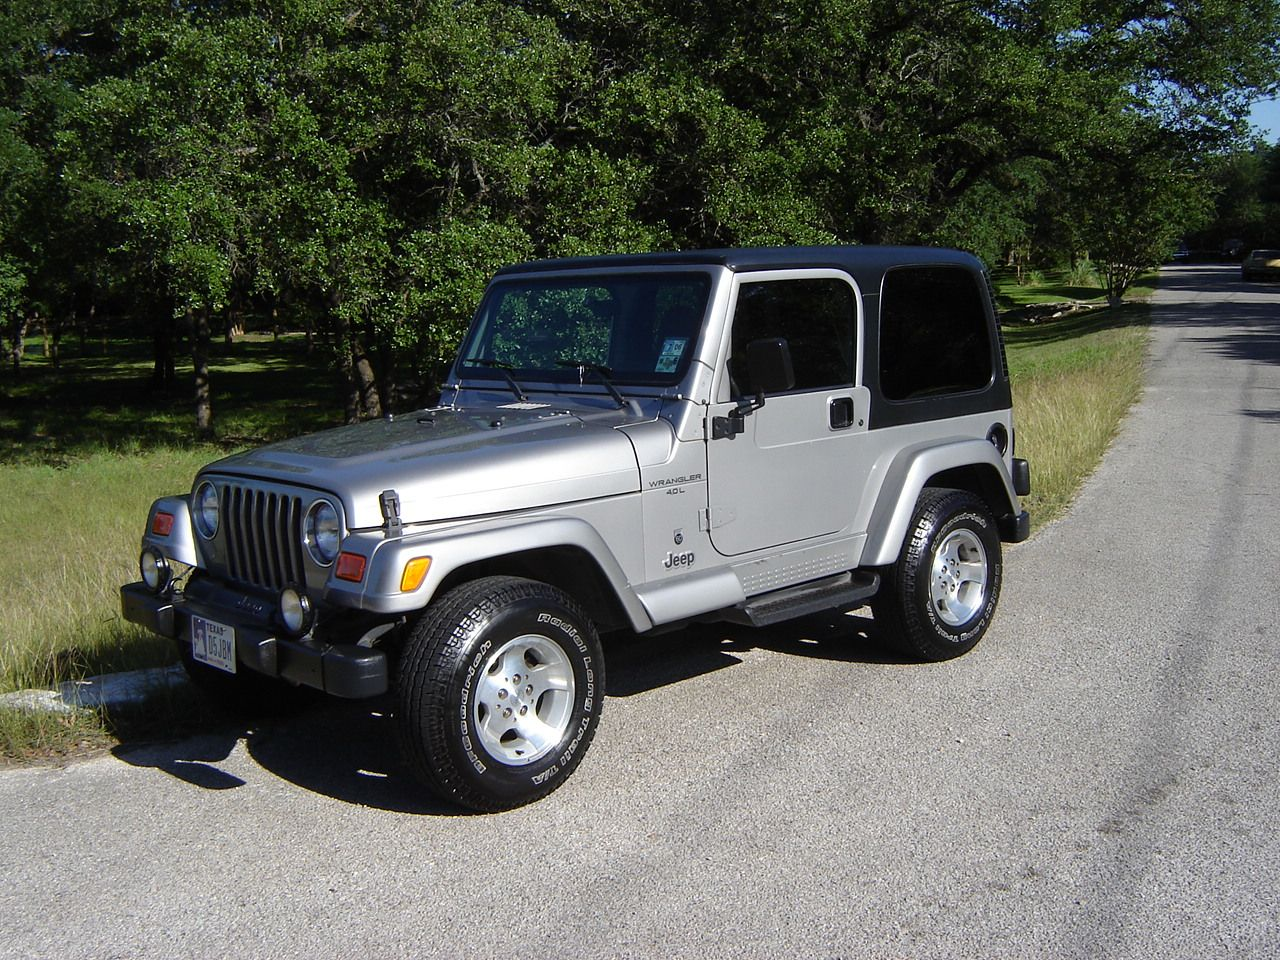 1997 Jeep Wrangler By Owner In New Jersey Nj Under 5000 Cheap